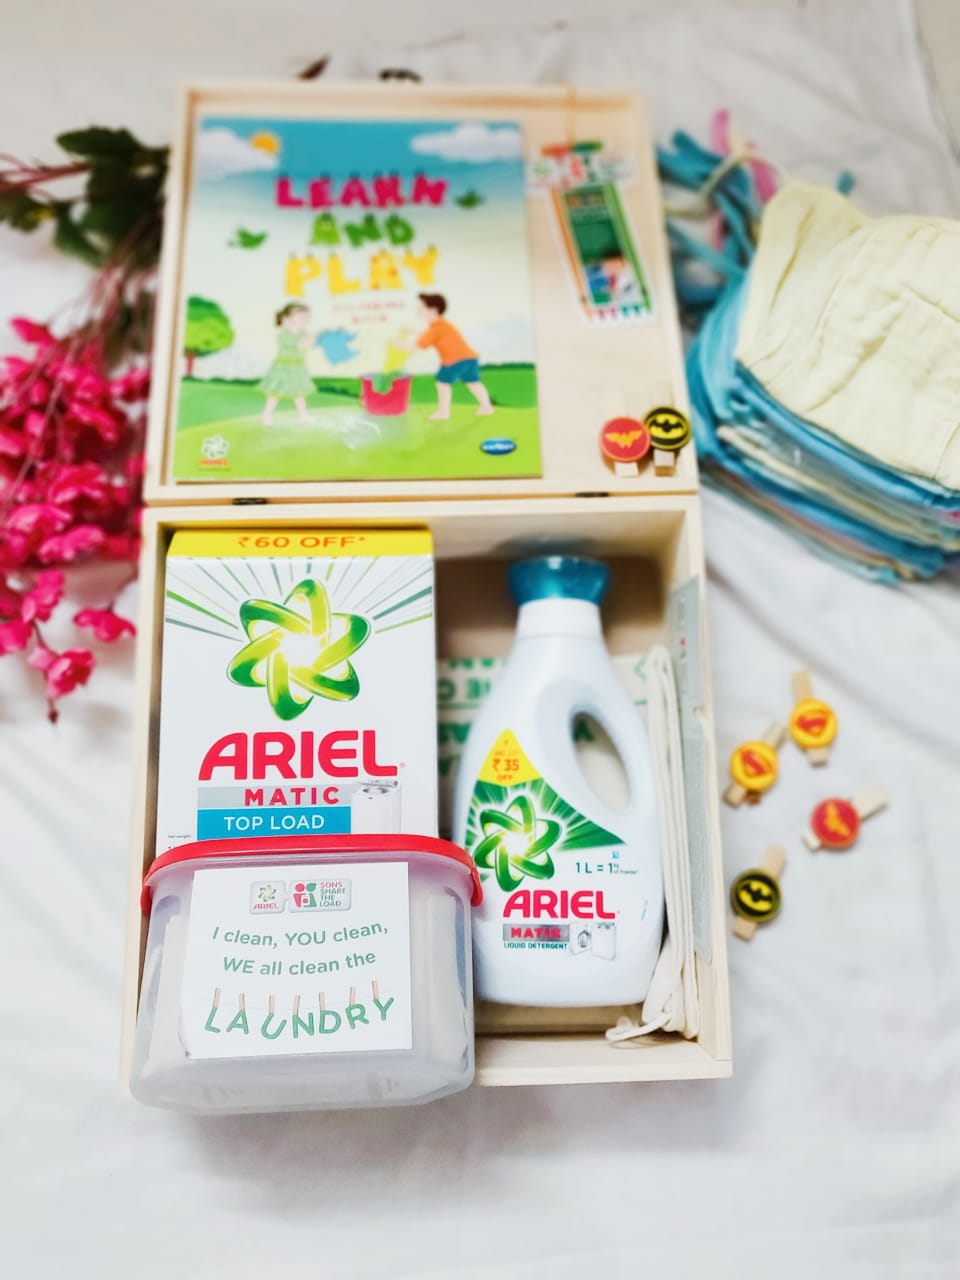 Ariel breaking stereotypes with sharetheload campaign